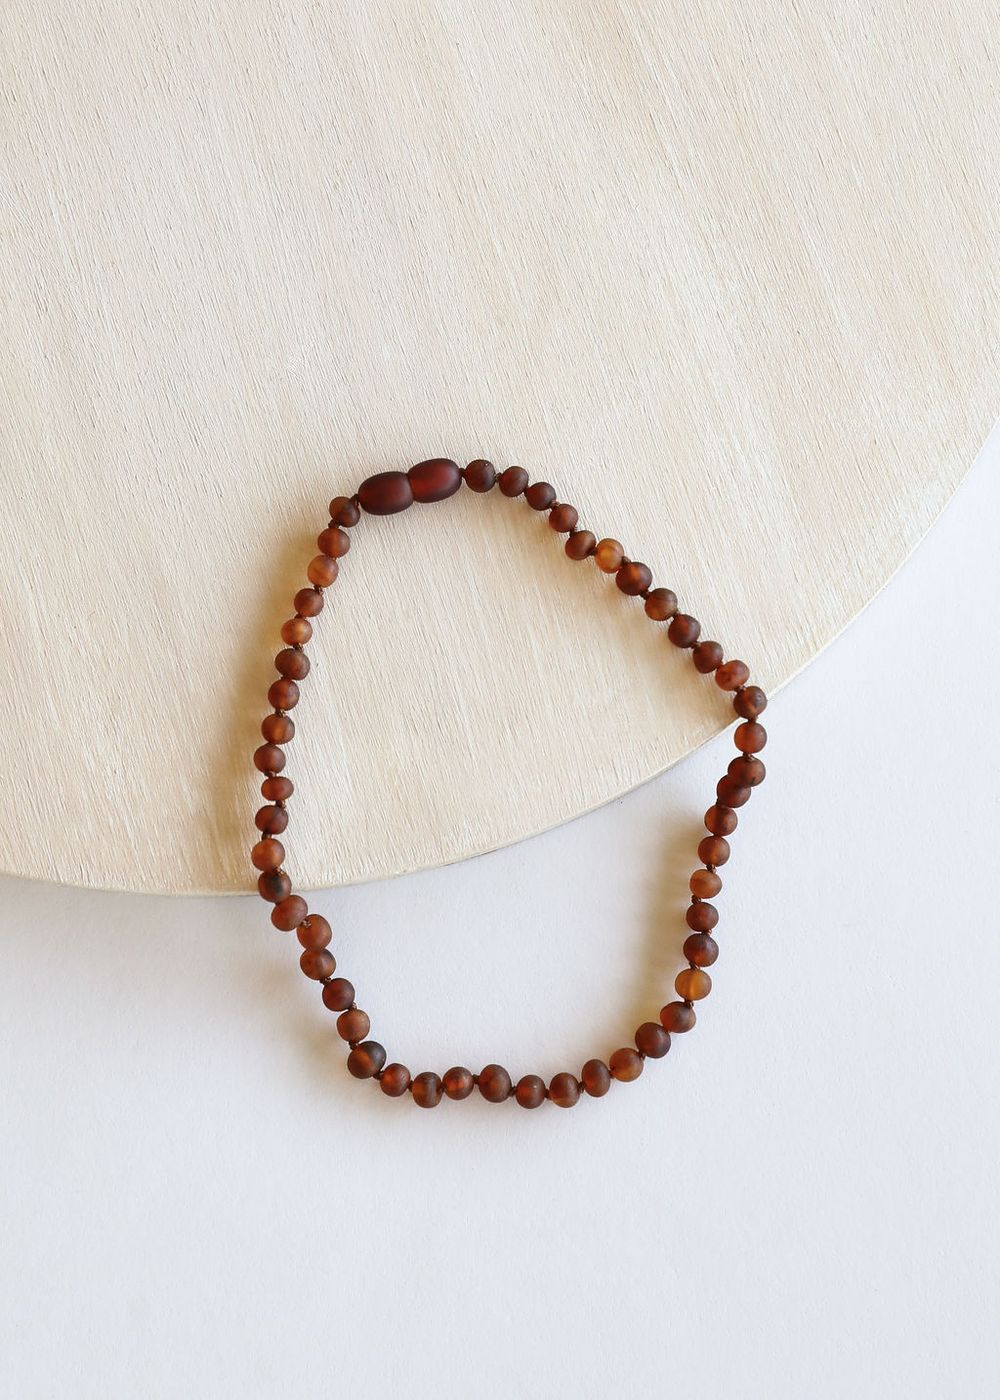 Canyon Leaf - Raw Cognac Amber Necklace - 13